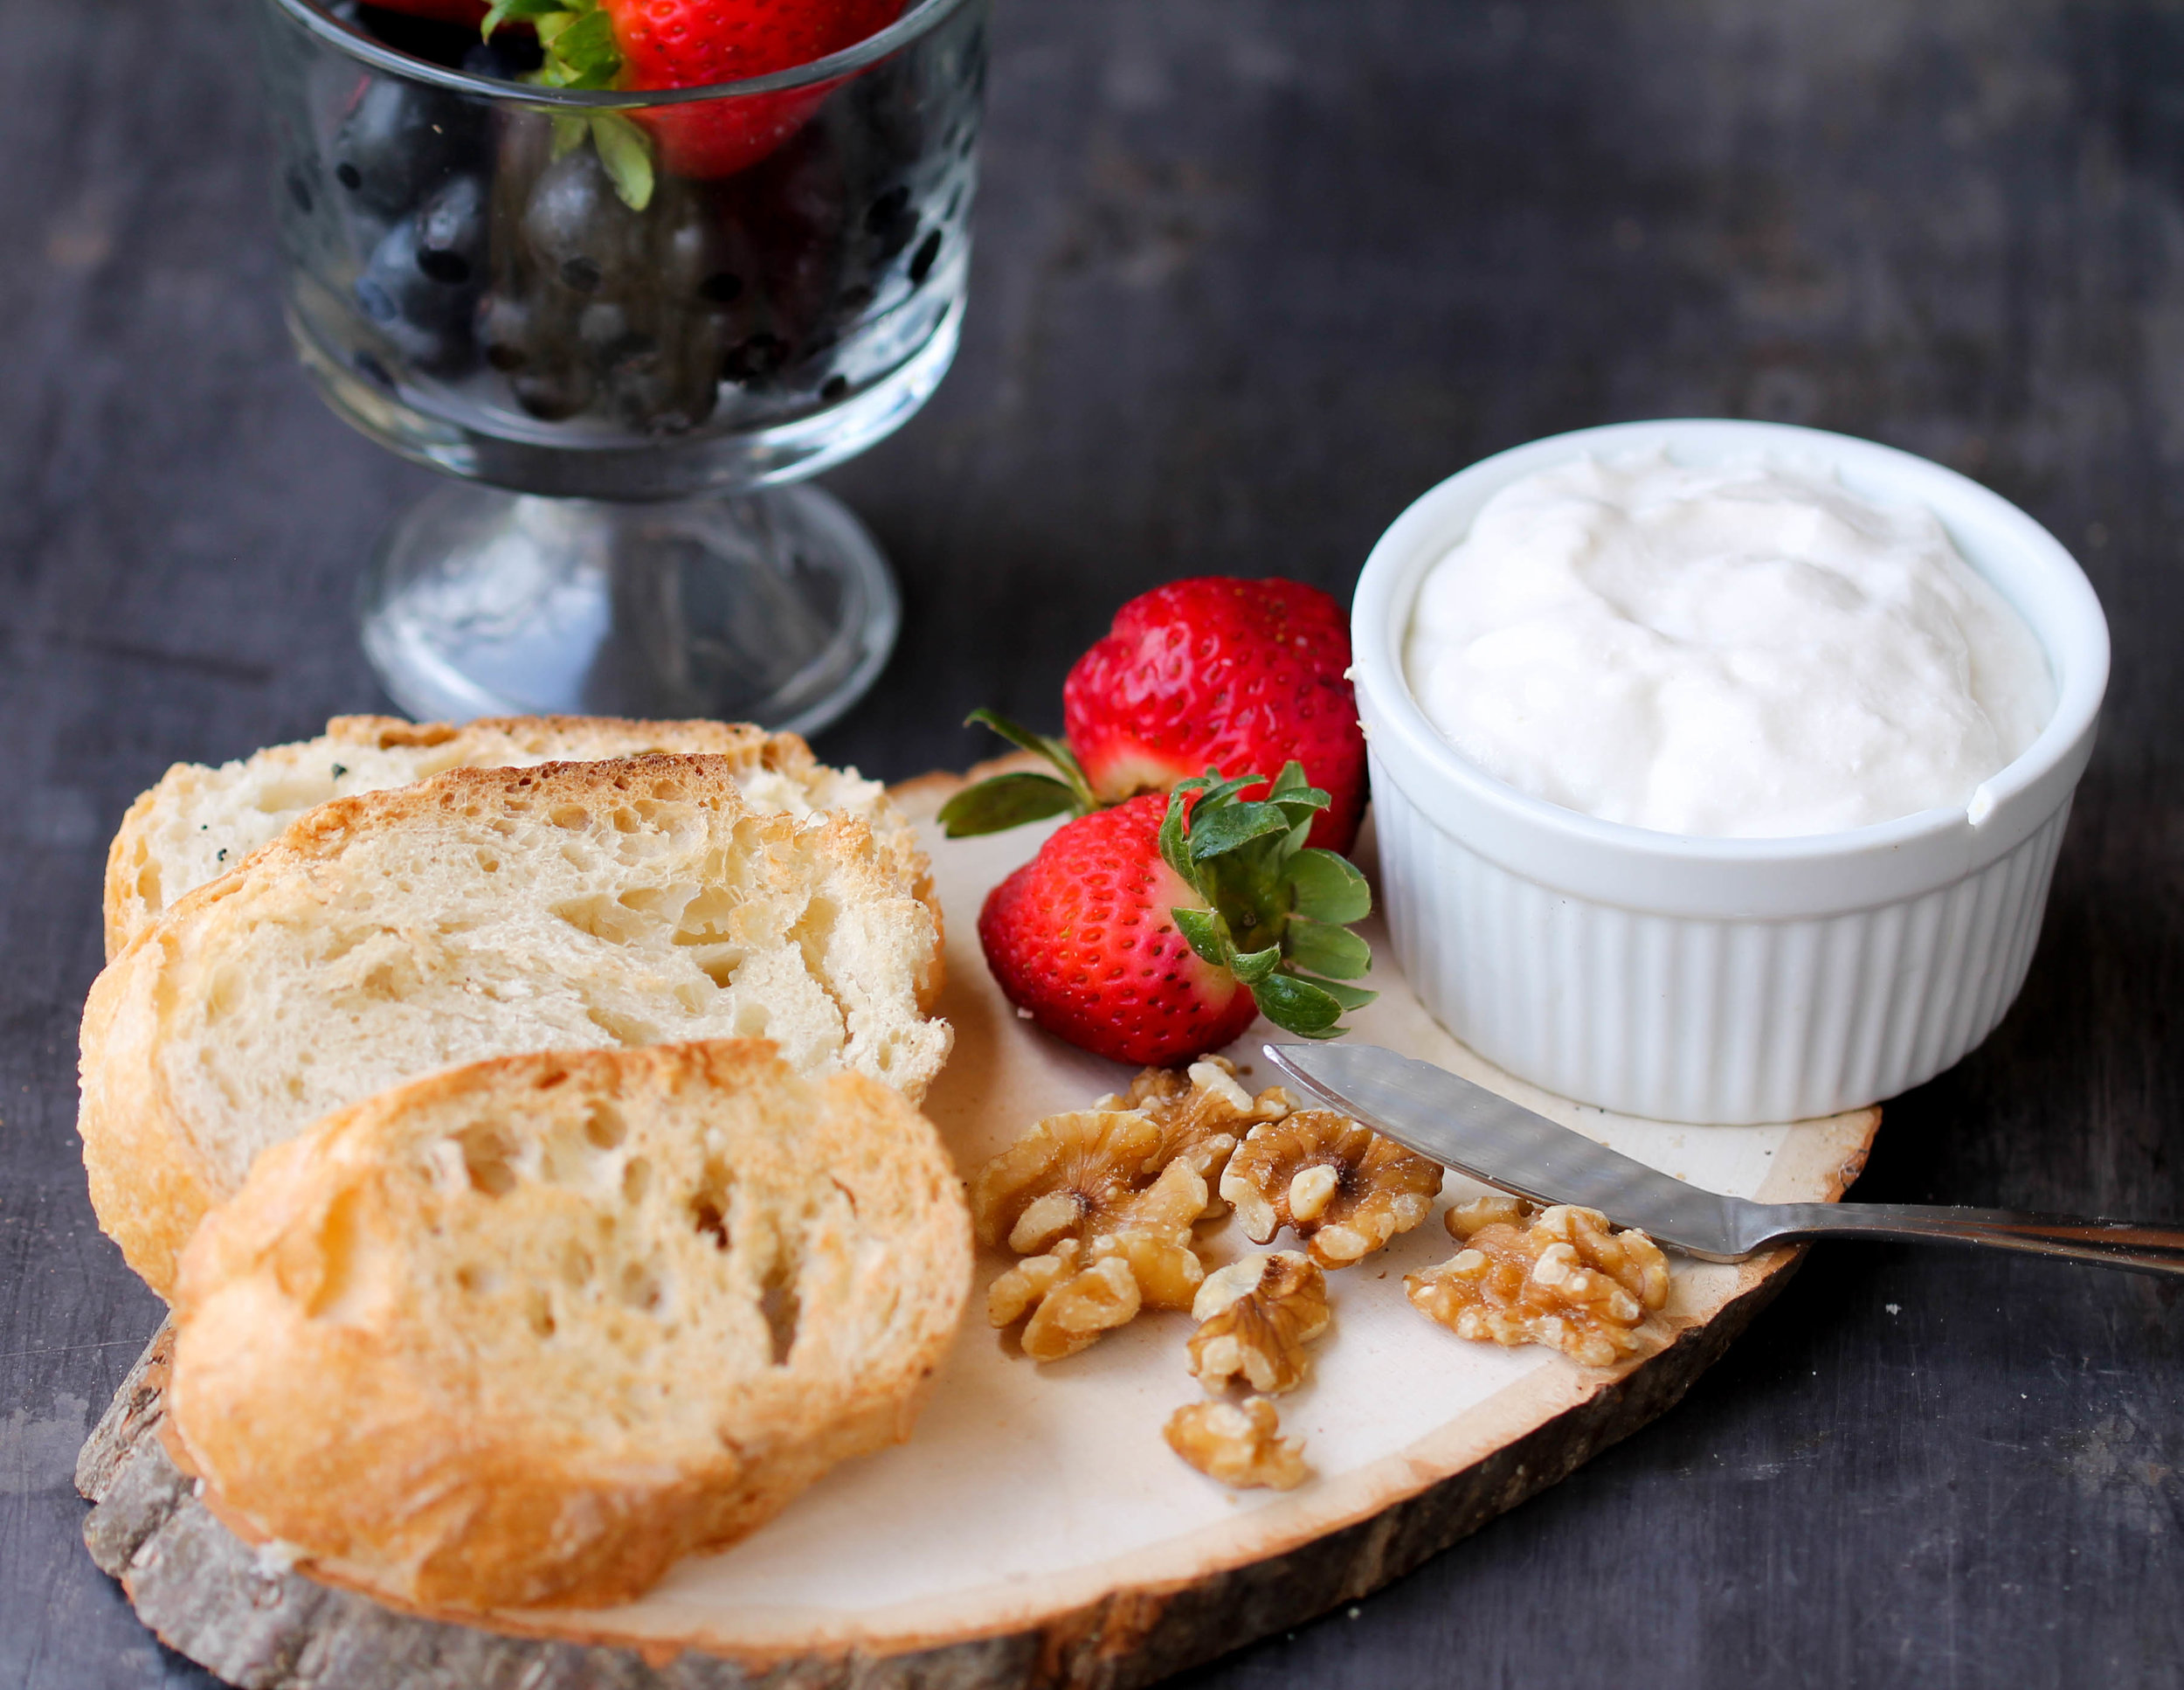 Whipped Cottage Cheese with Berries Crostini is an easy, quick appetizer or dessert that takes 5 minutes or less to make.